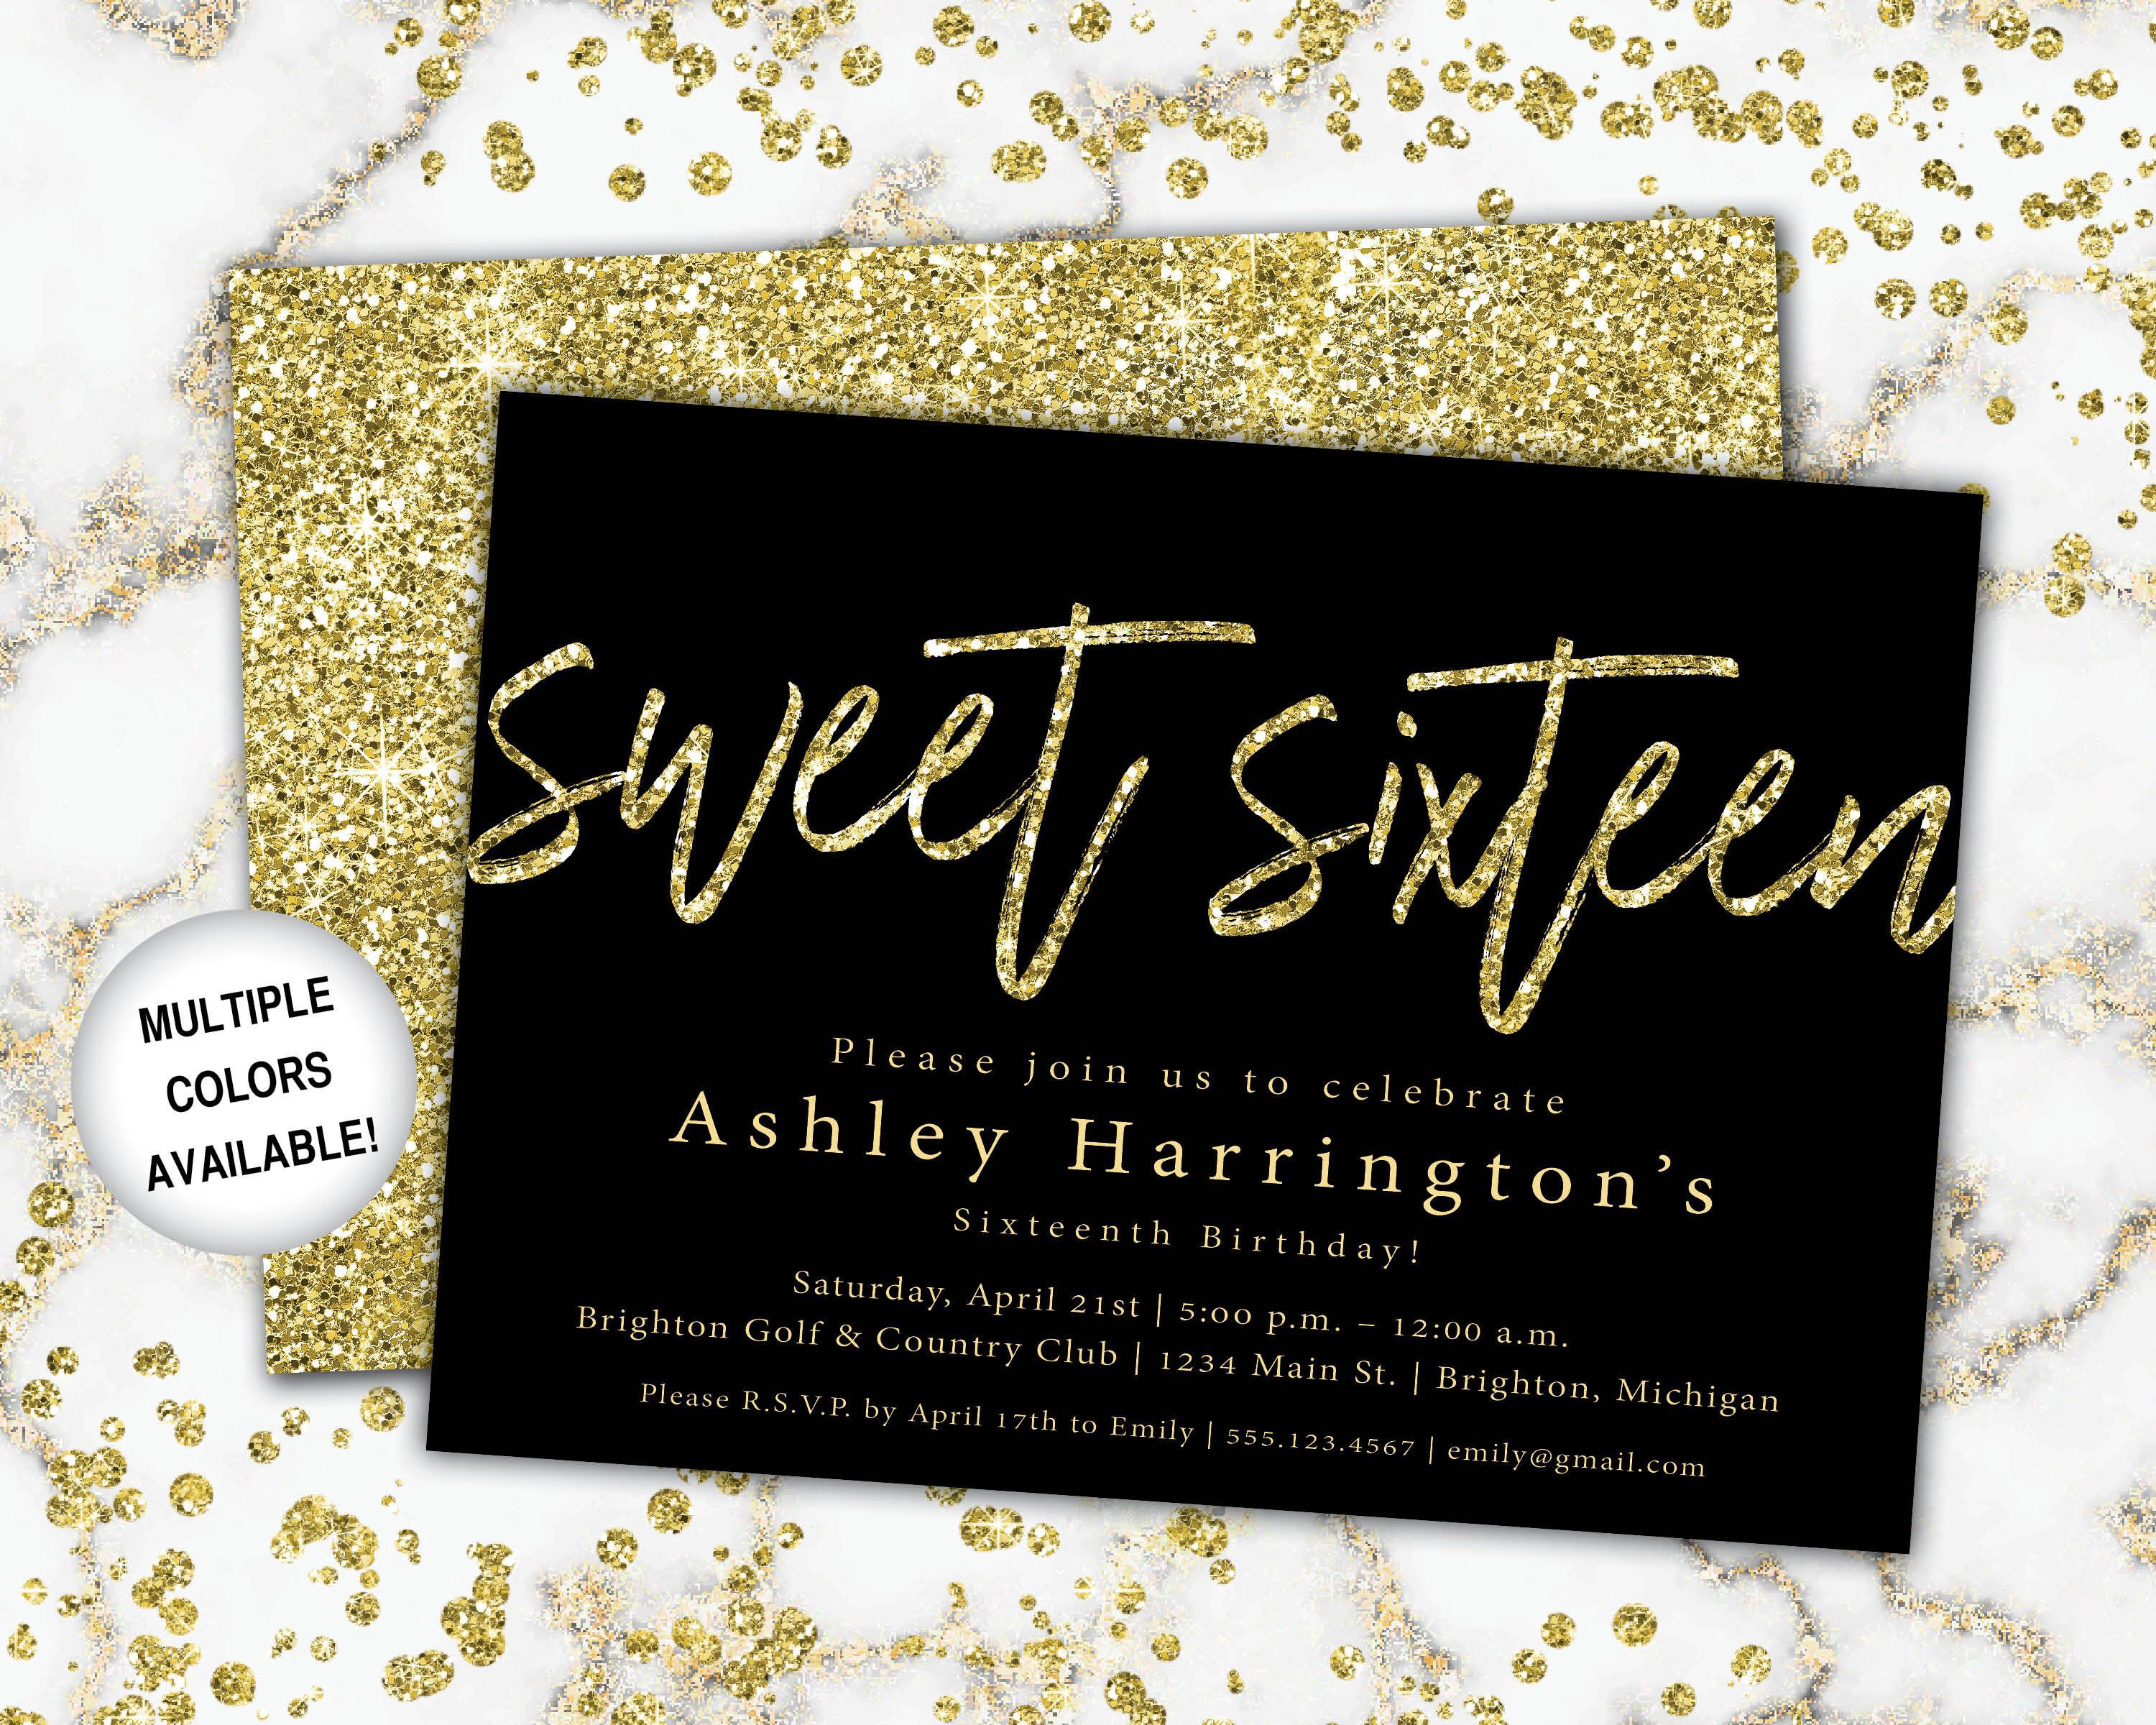 007 Stirring Sweet 16 Invite Template Concept  Templates Surprise Party Invitation Birthday Free 16thFull